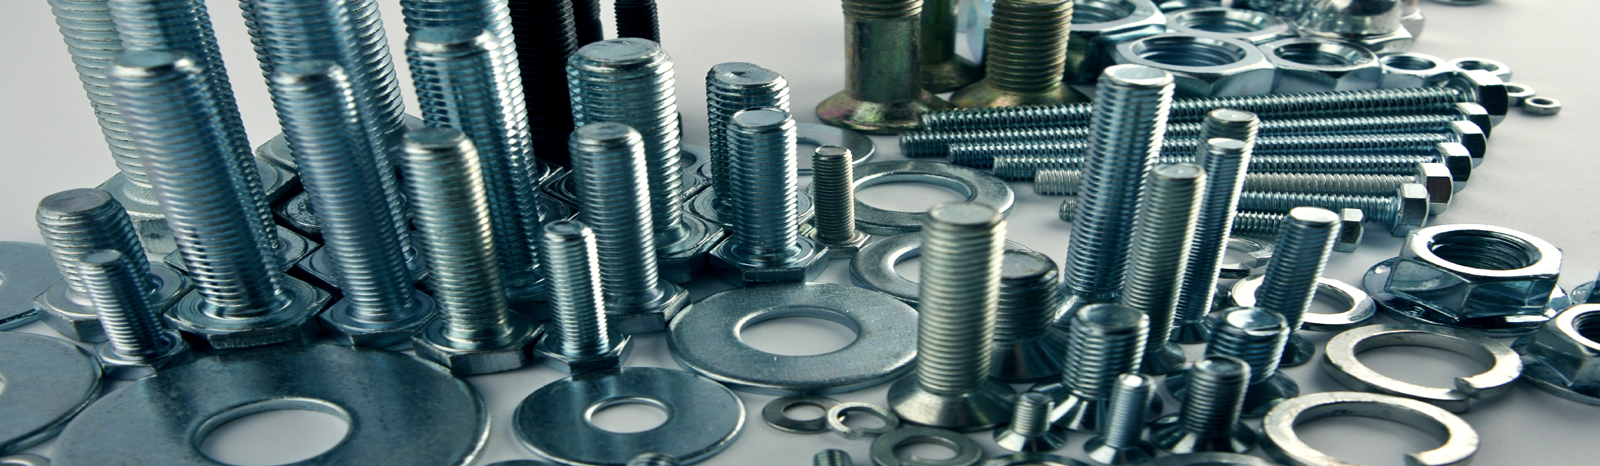 stainless steel fasteners manufacturer exporters suppliers